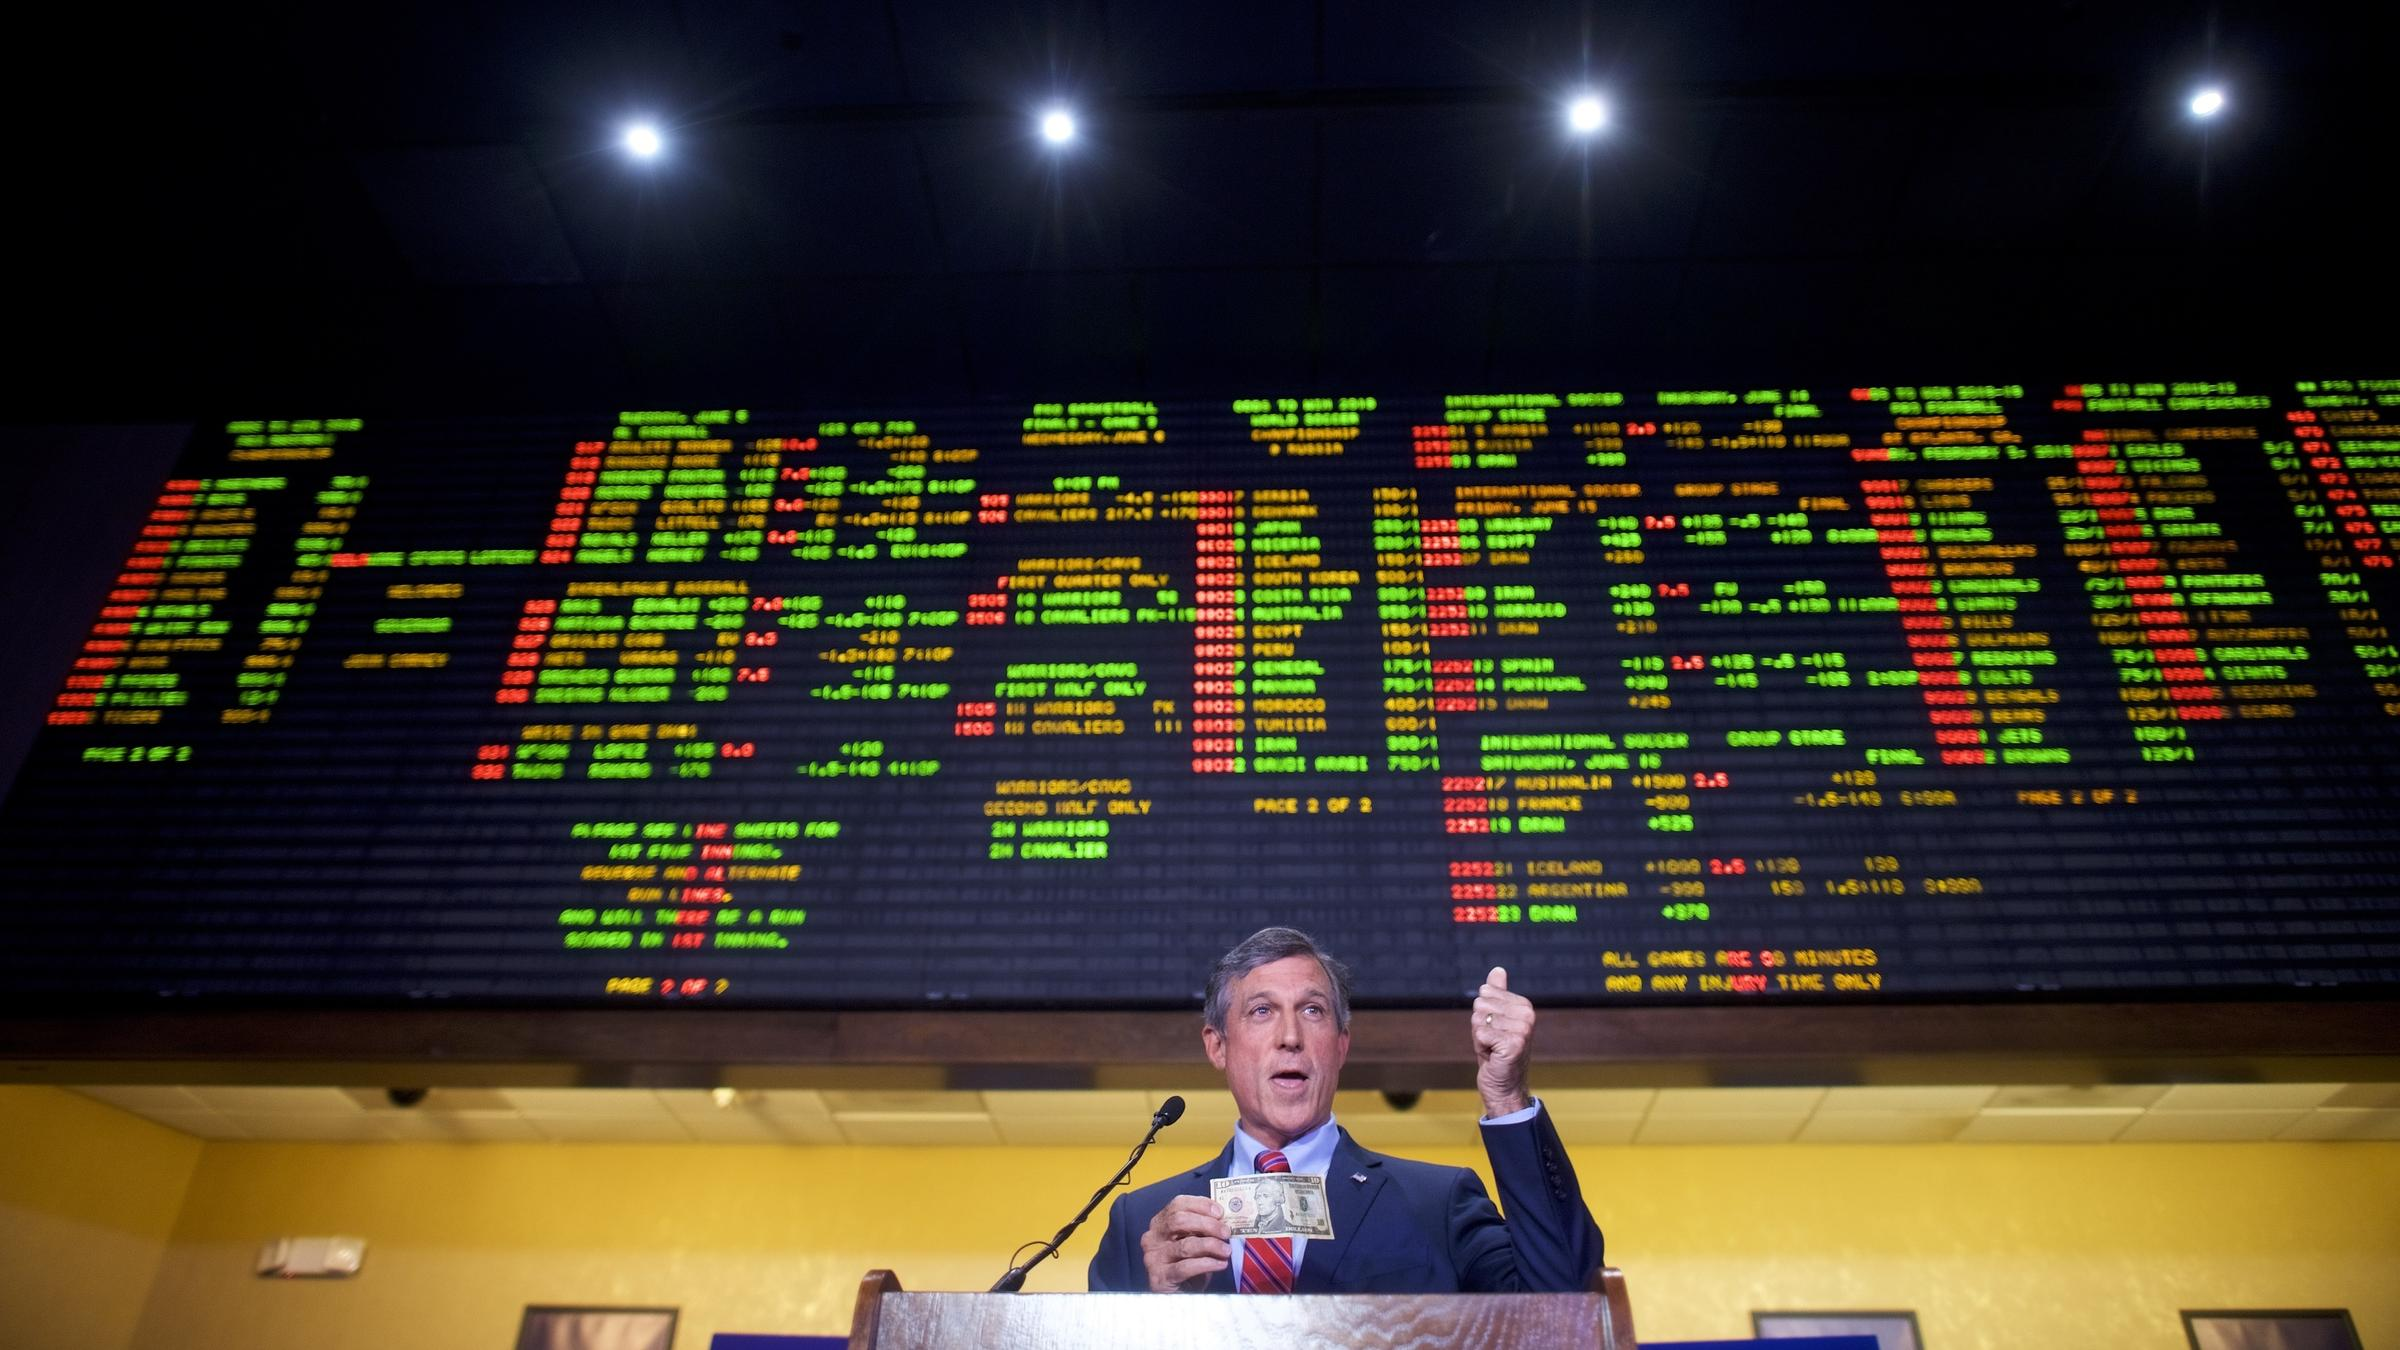 Sports betting: A pool of revenue for Arizona